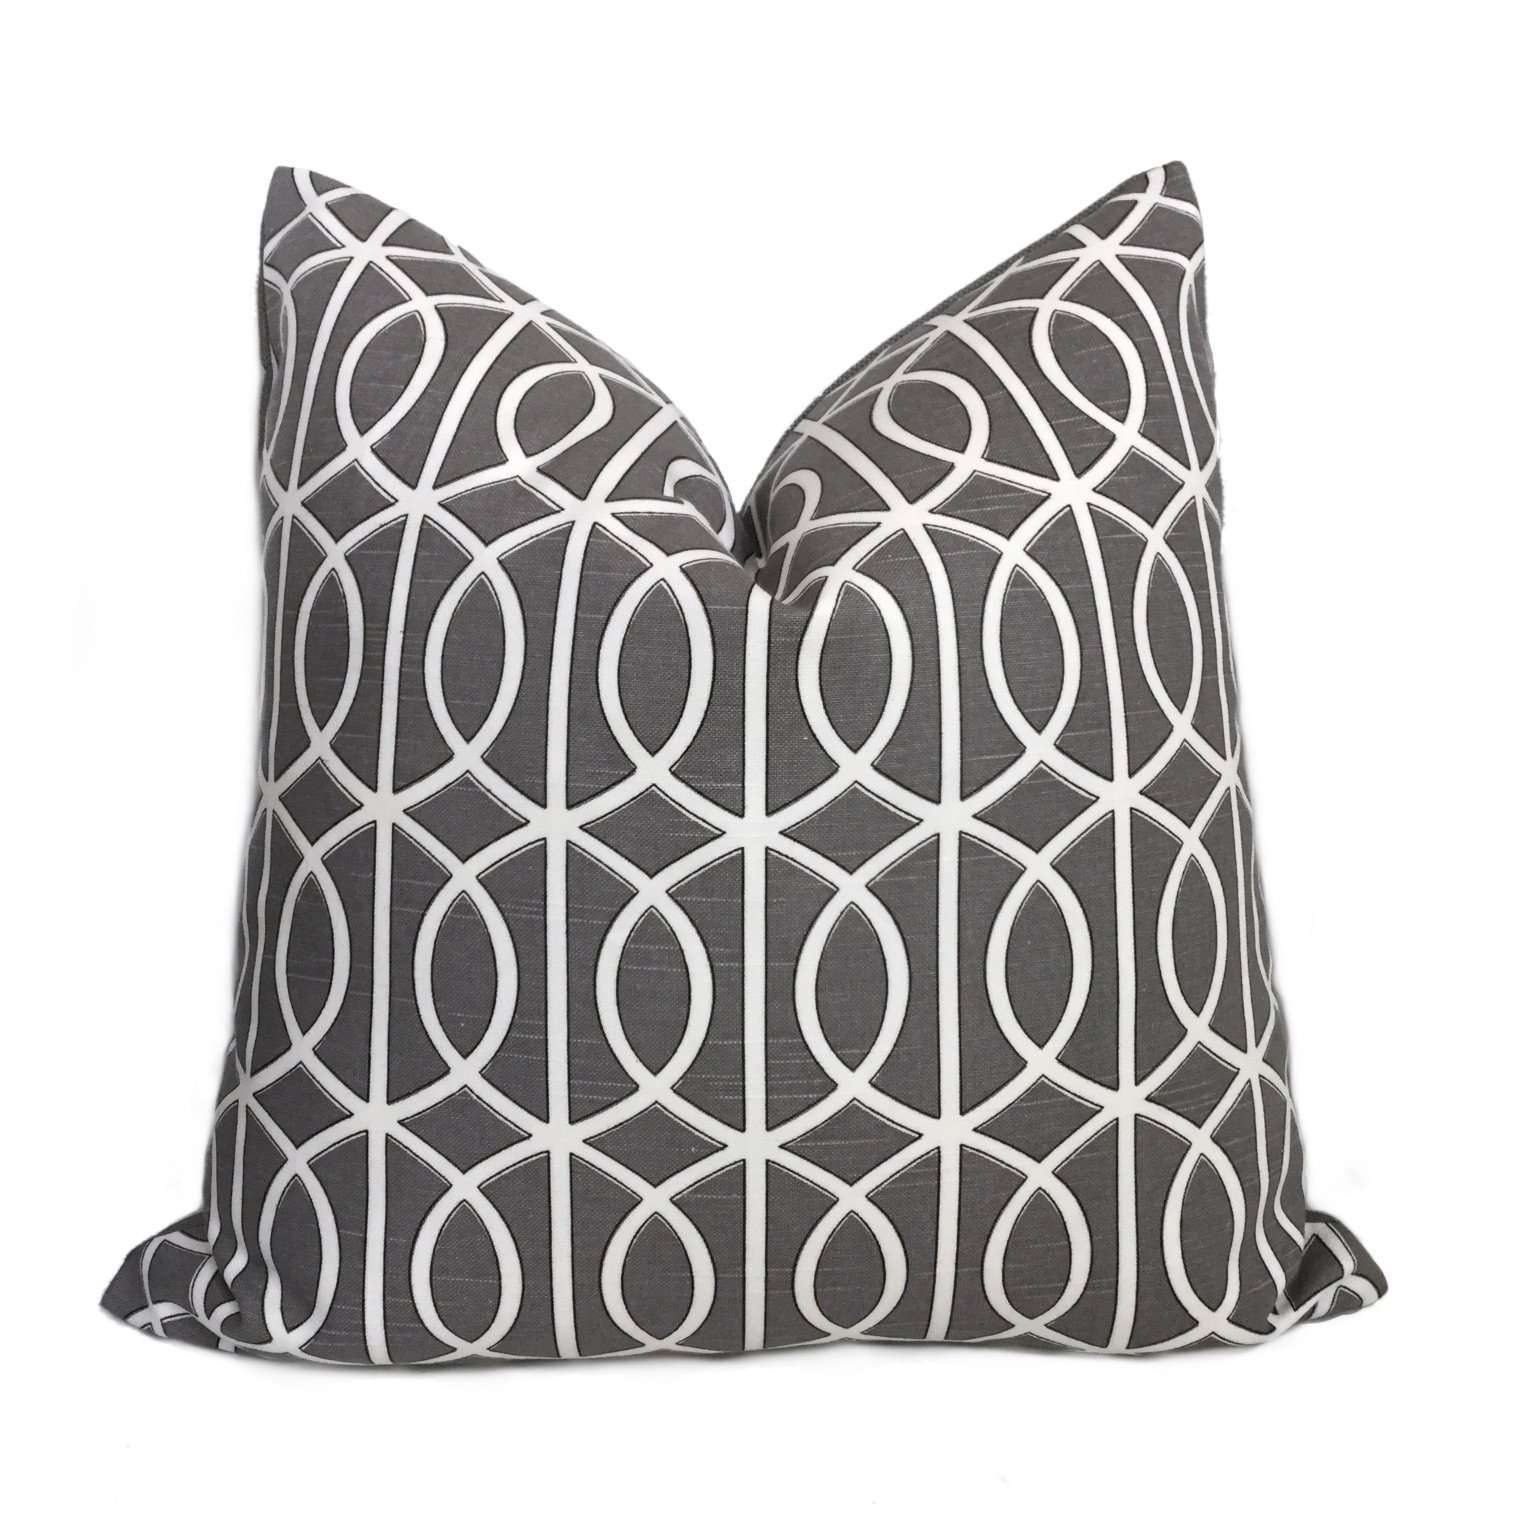 Robert Allen Bella Porte Charcoal Gray White Geometric Lattice Fretwork Pillow Cover